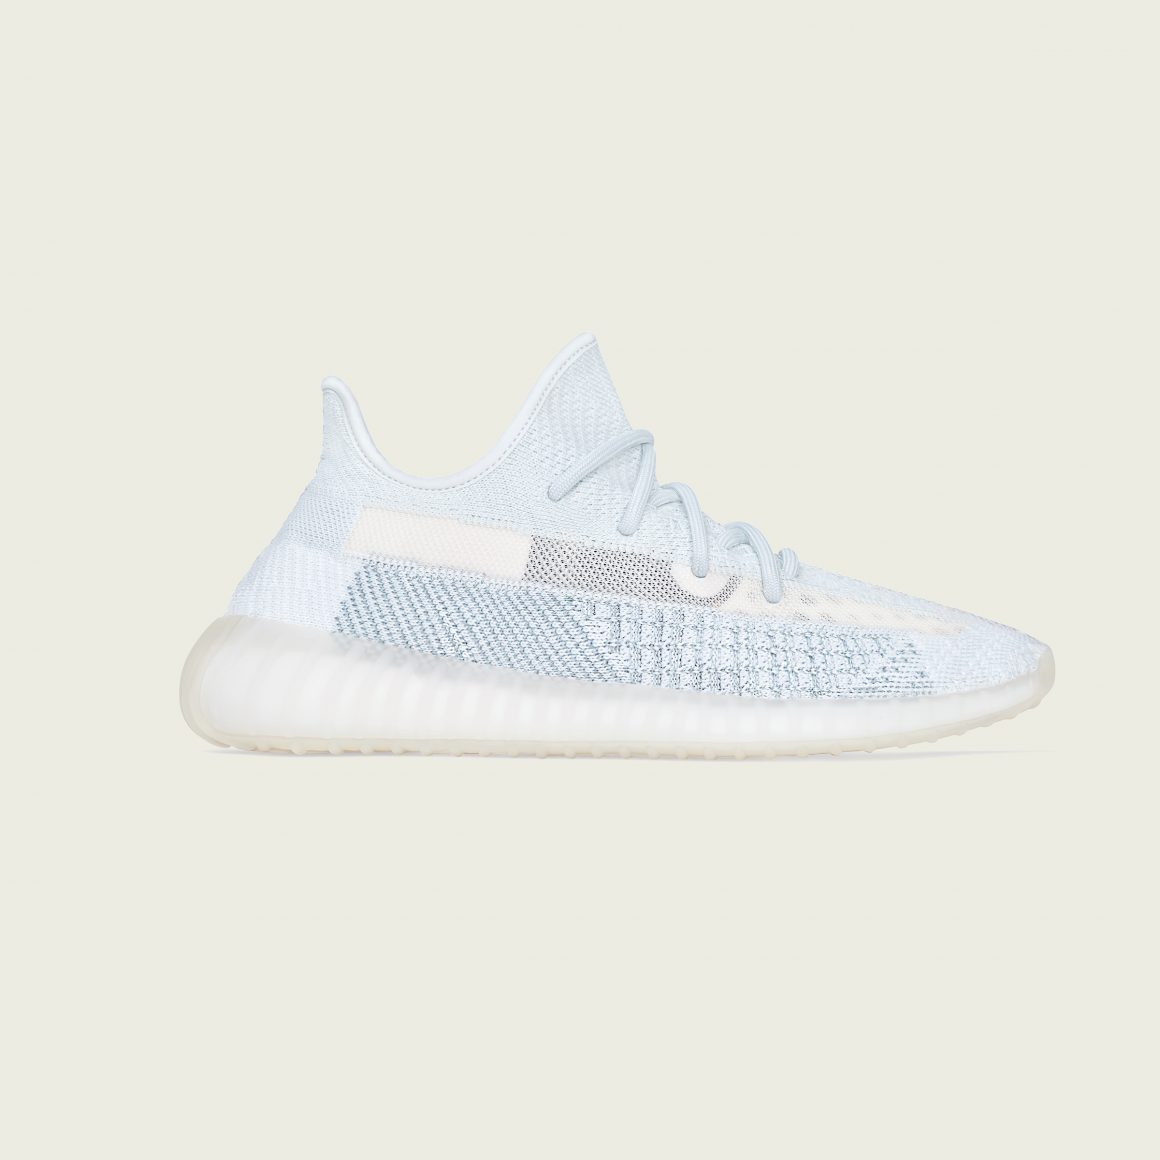 adidas Yeezy Boost 350 v2 ''Cloud'' ''Non Reflective''